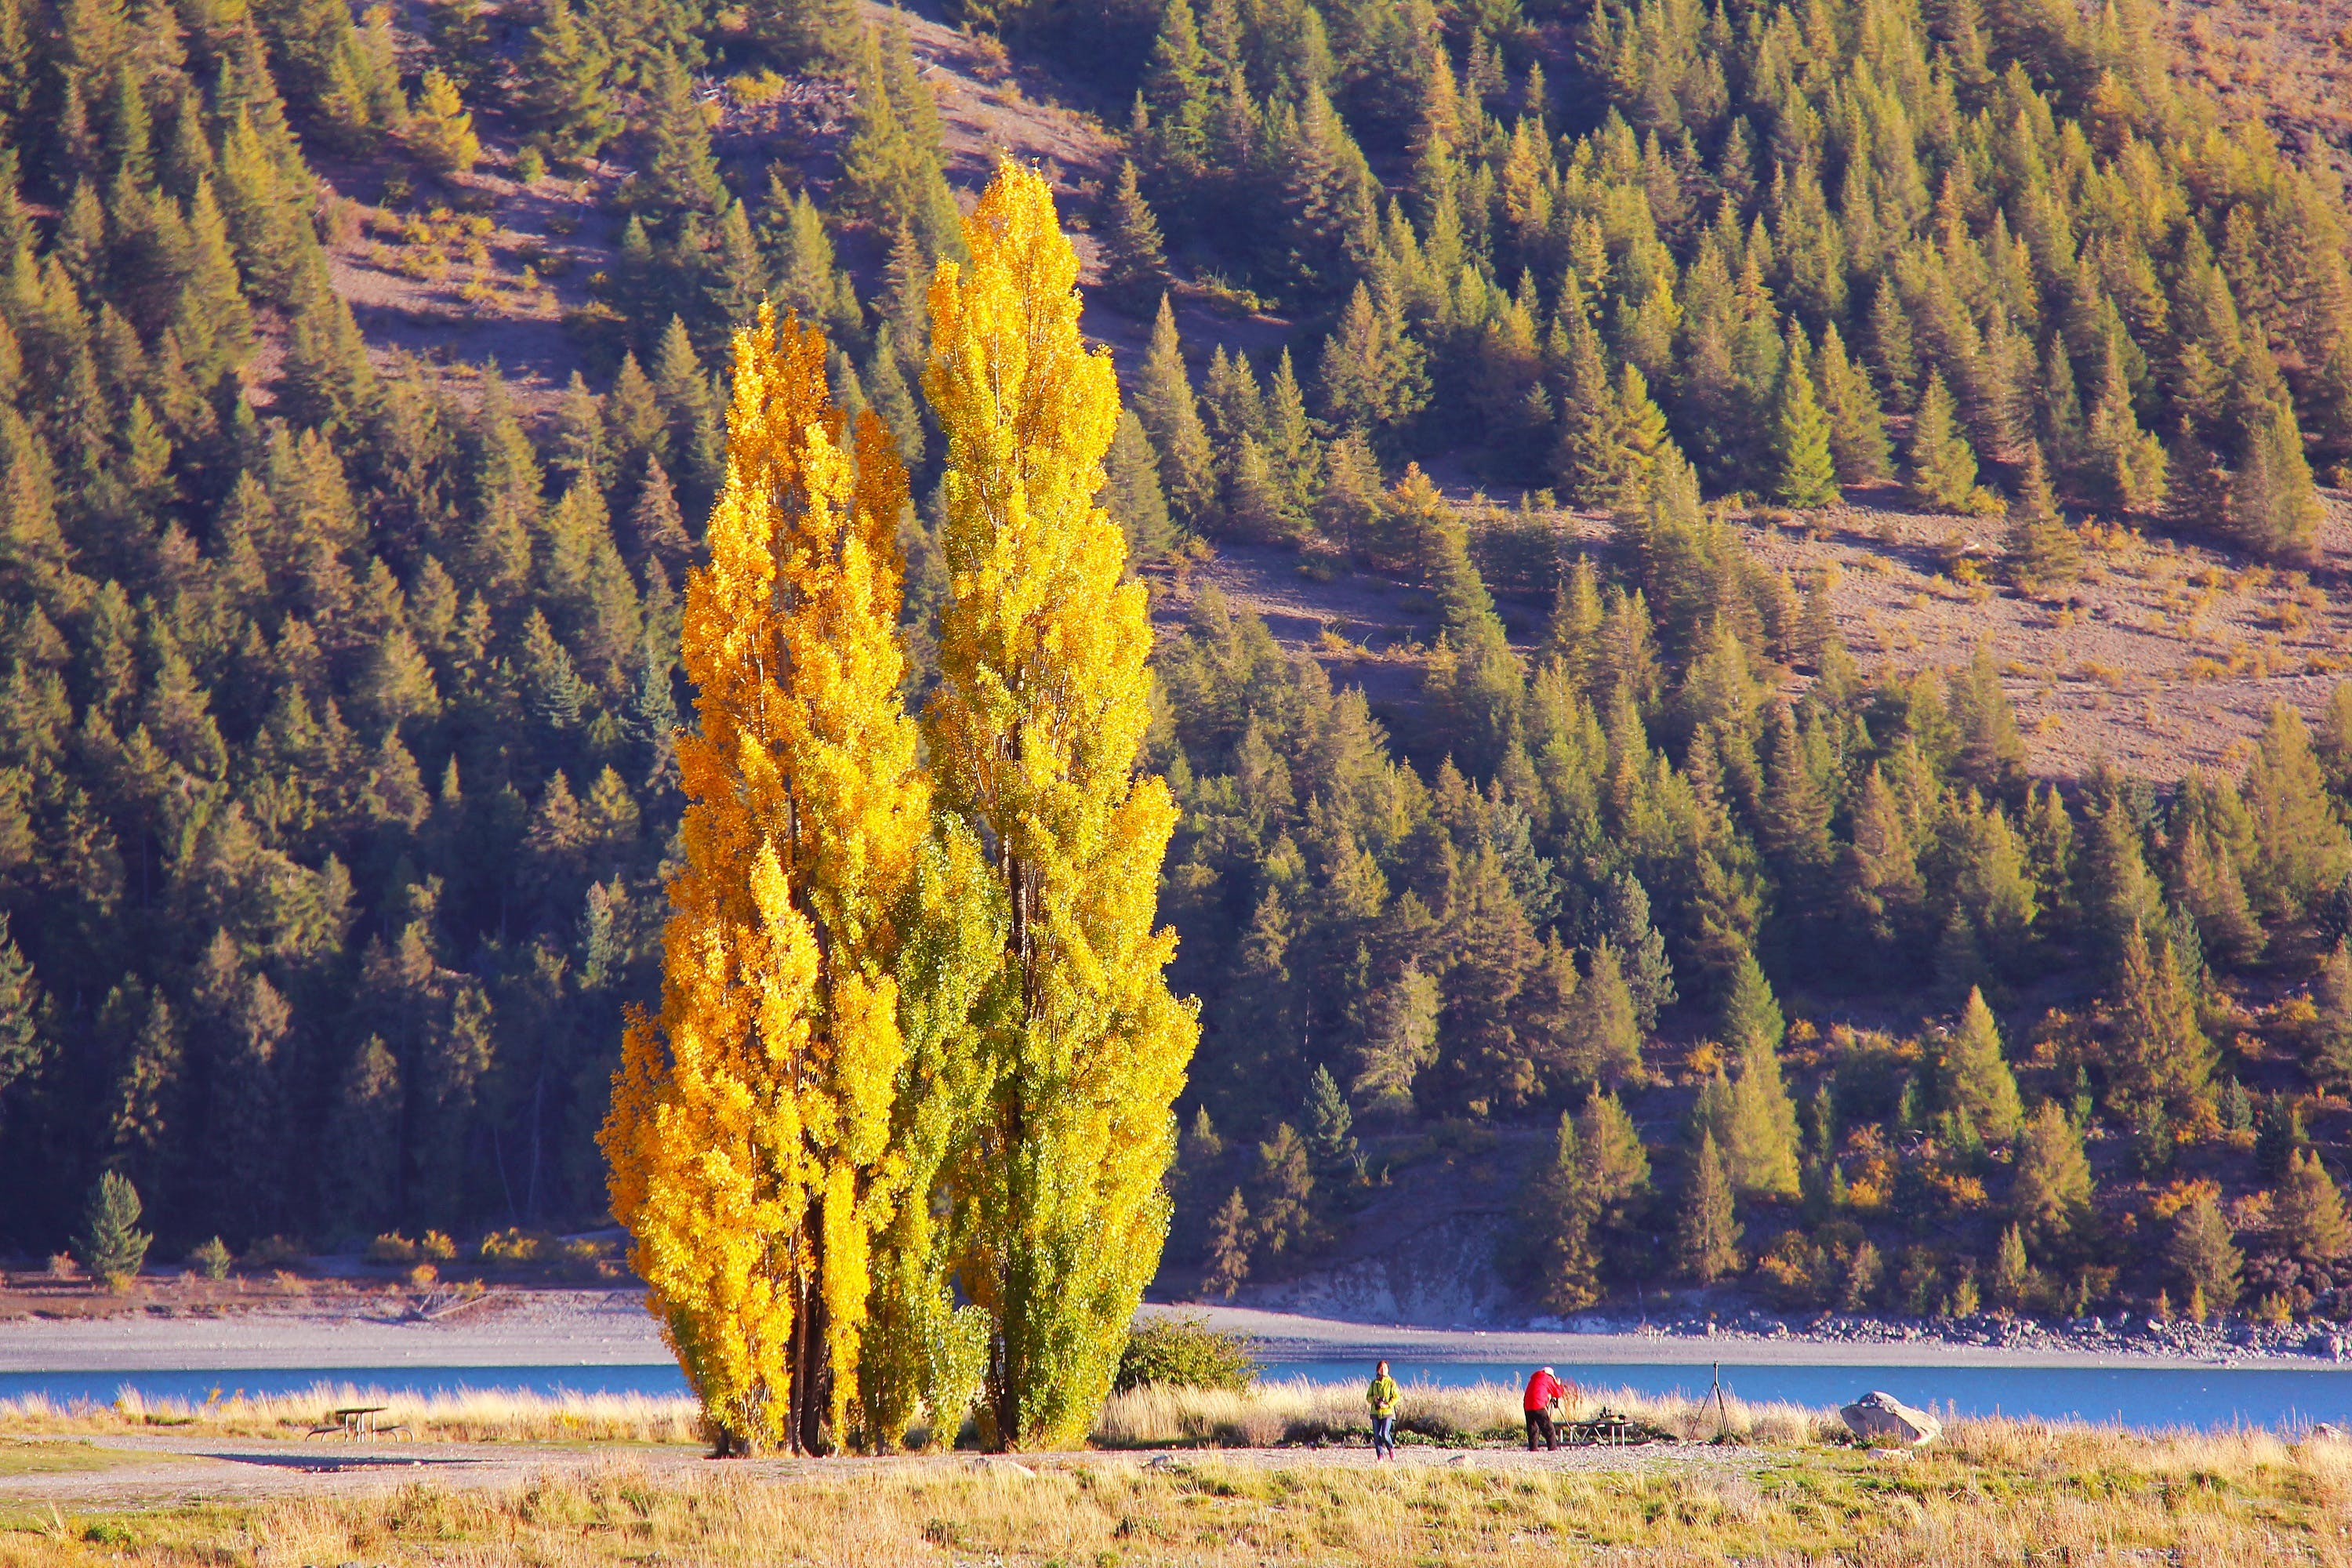 Two Person Beside Body of Water Near Pine Trees